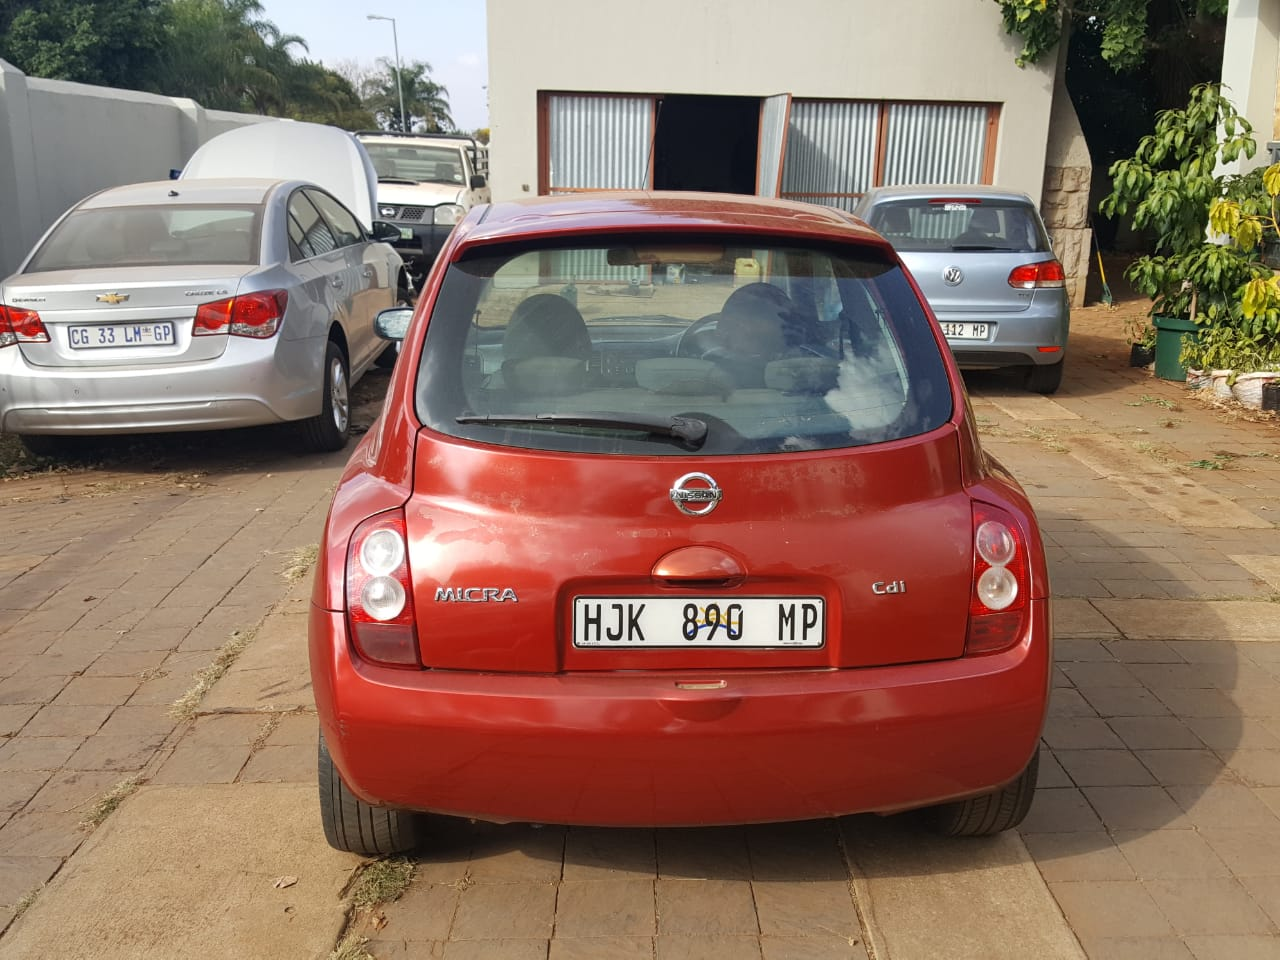 Nissan Mikra in Daily use needs a little tlc